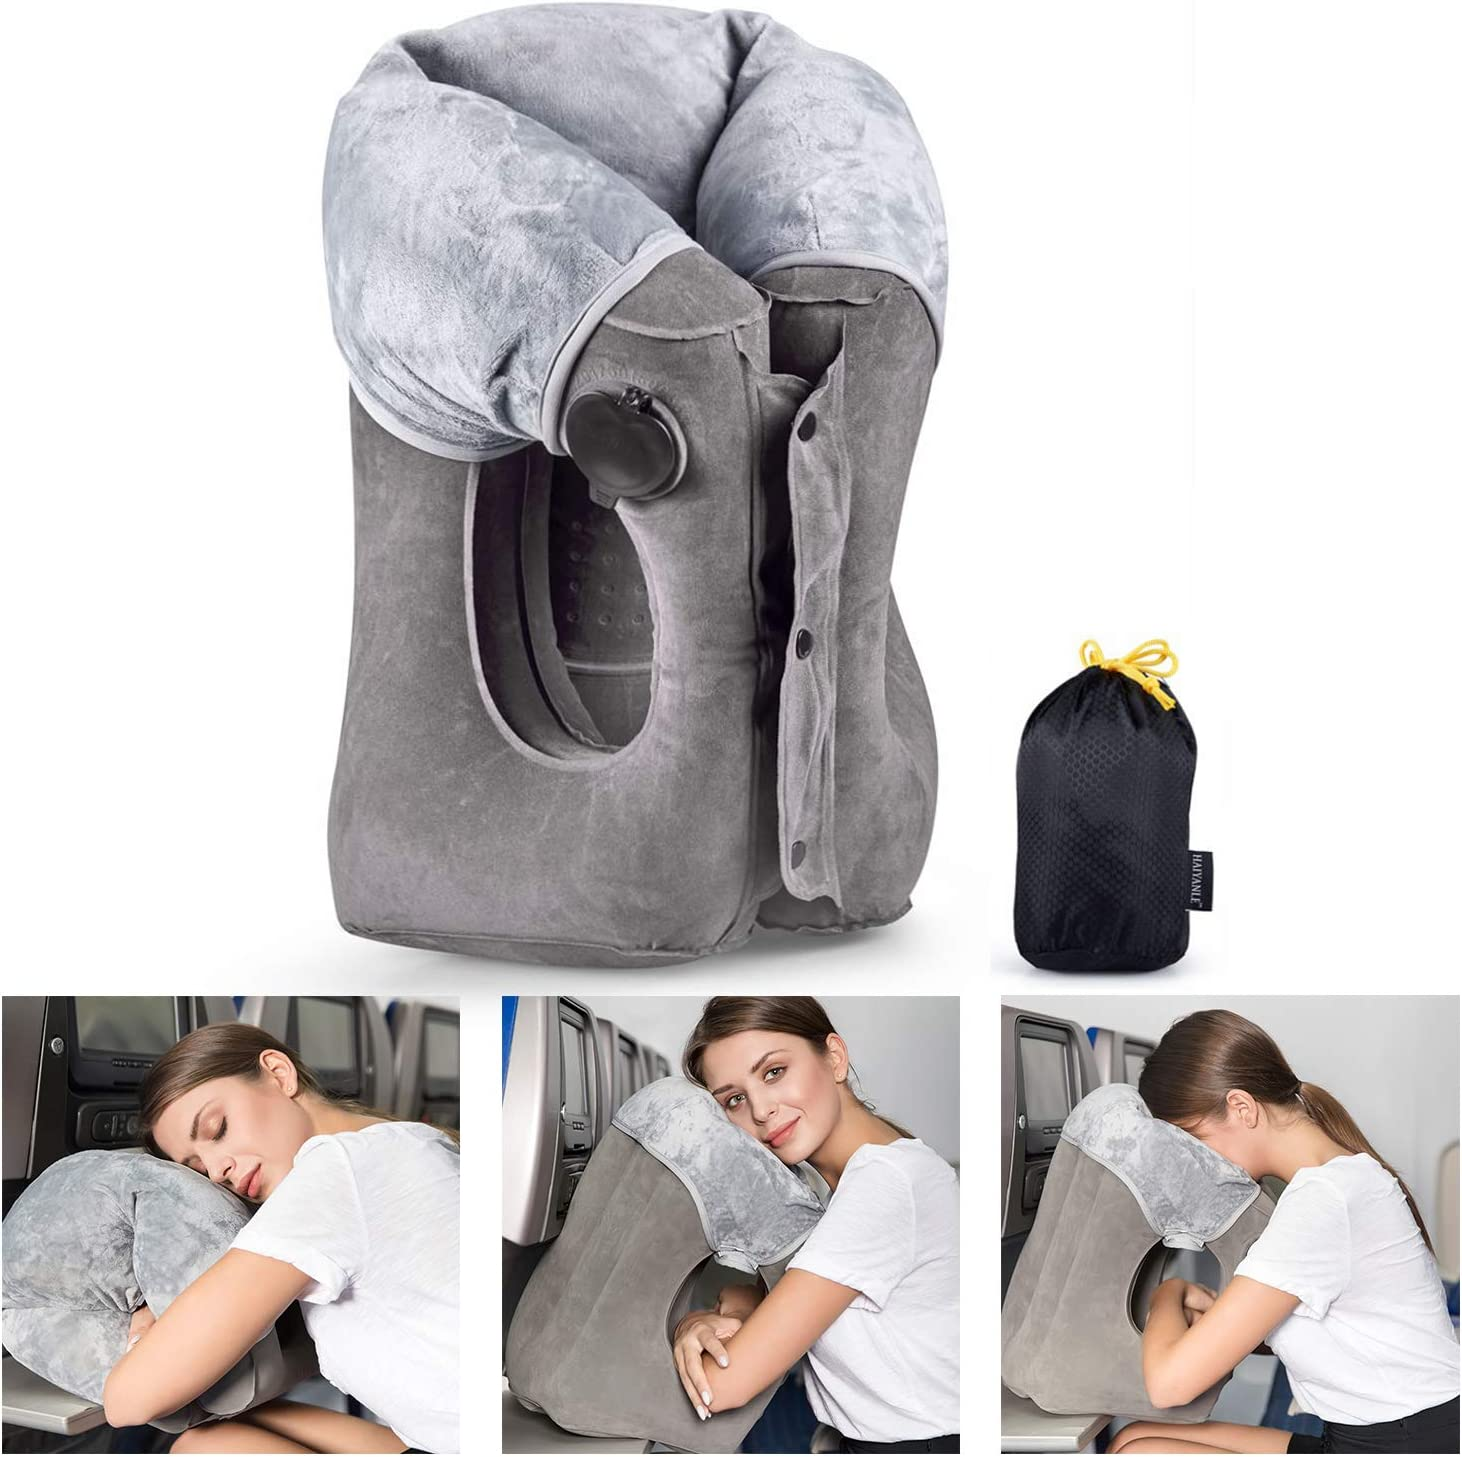 Inflatable Travel Pillow Upgraded Airplane Pillow Head and Neck Rest Pillow for Journey Easy to Inflate and Deflate Flight Pillow with Super Big Valve, Soft Cover and Portable Storage Bag (Grey)